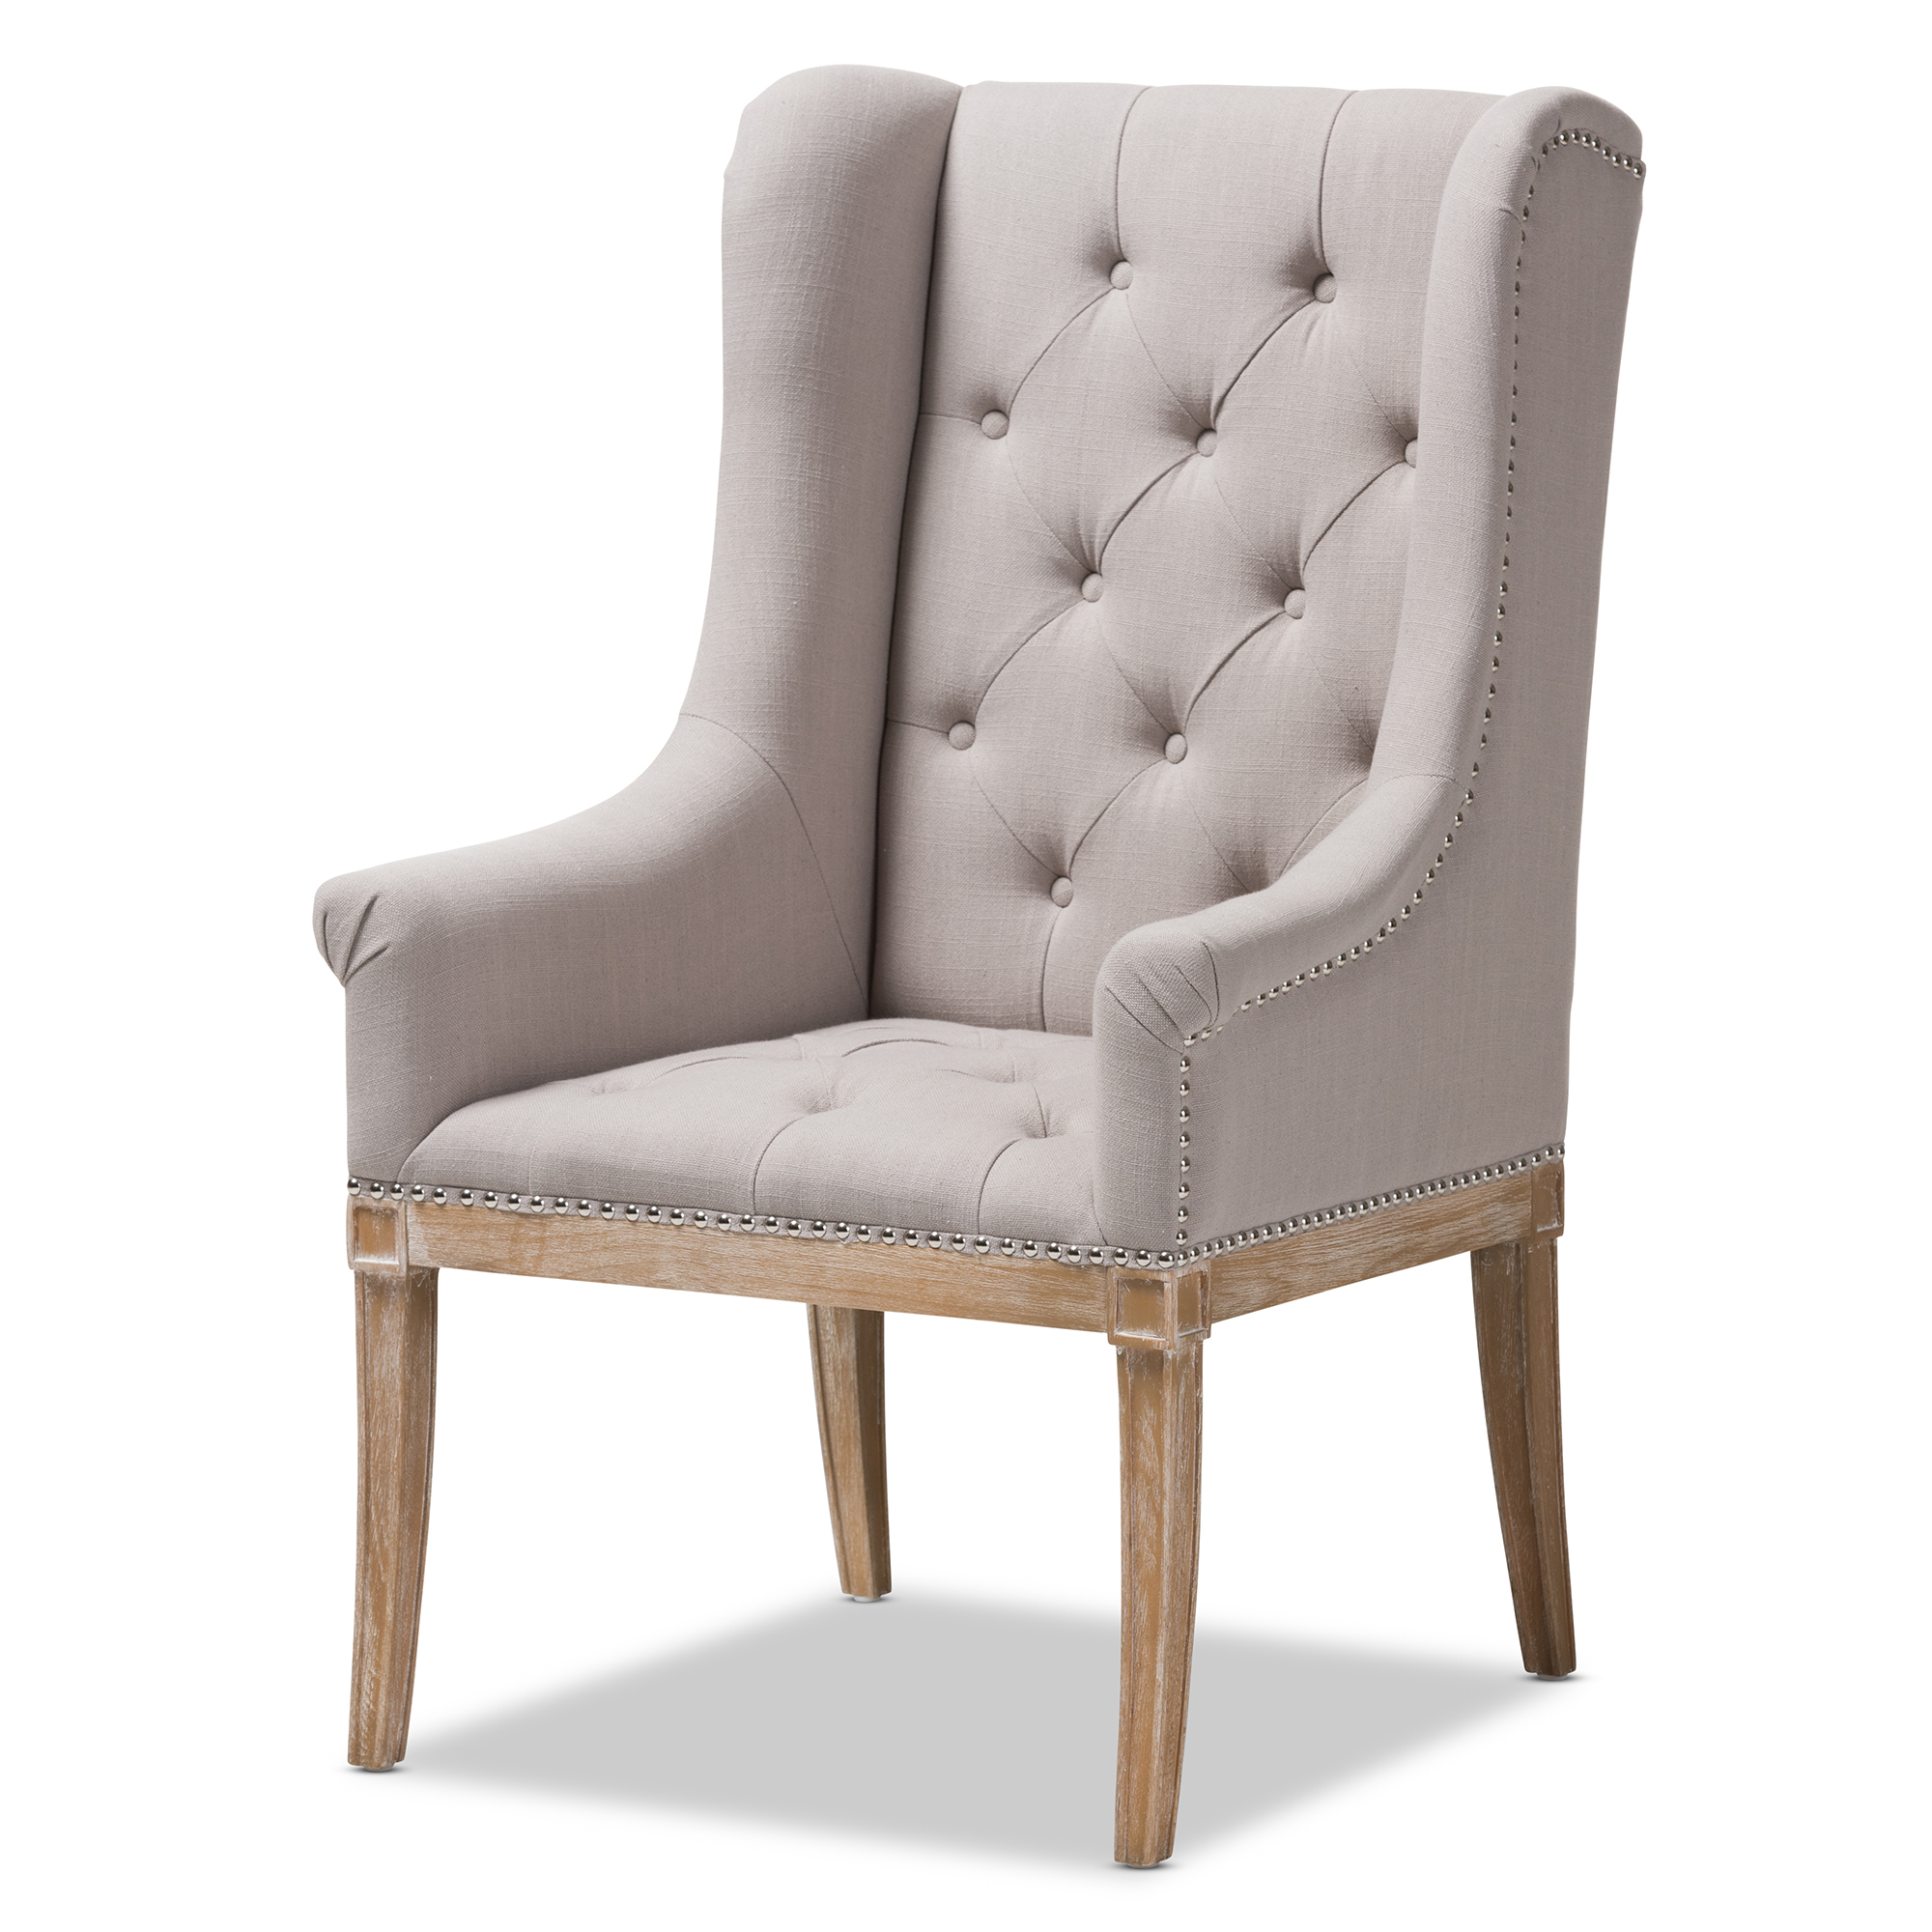 Baxton Studio Cedulie French Provincial Beige Fabric Upholstered  Whitewashed Oak Lounge Chair Affordable Modern Furniture In